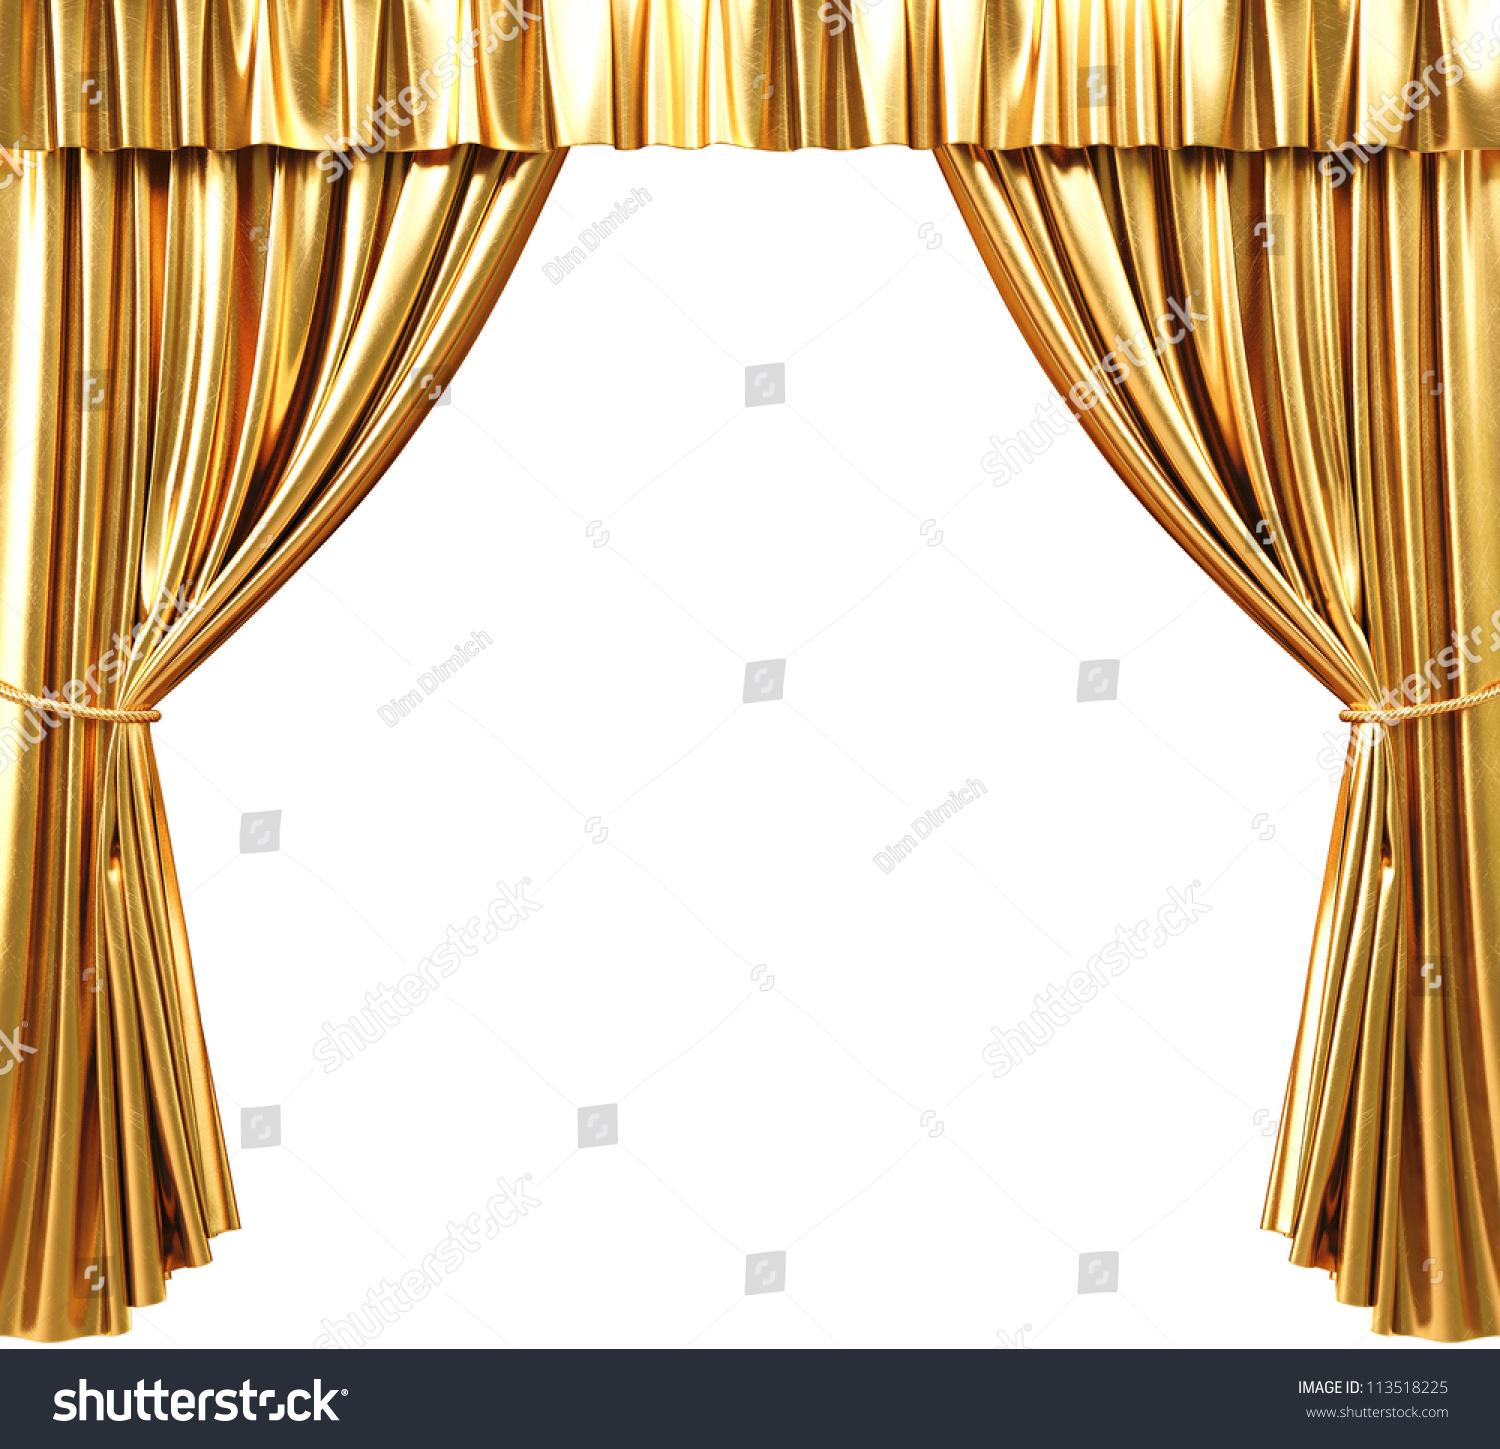 Theatre curtains png - Gold Curtains Background Golden Theatrical Curtain 3d Image